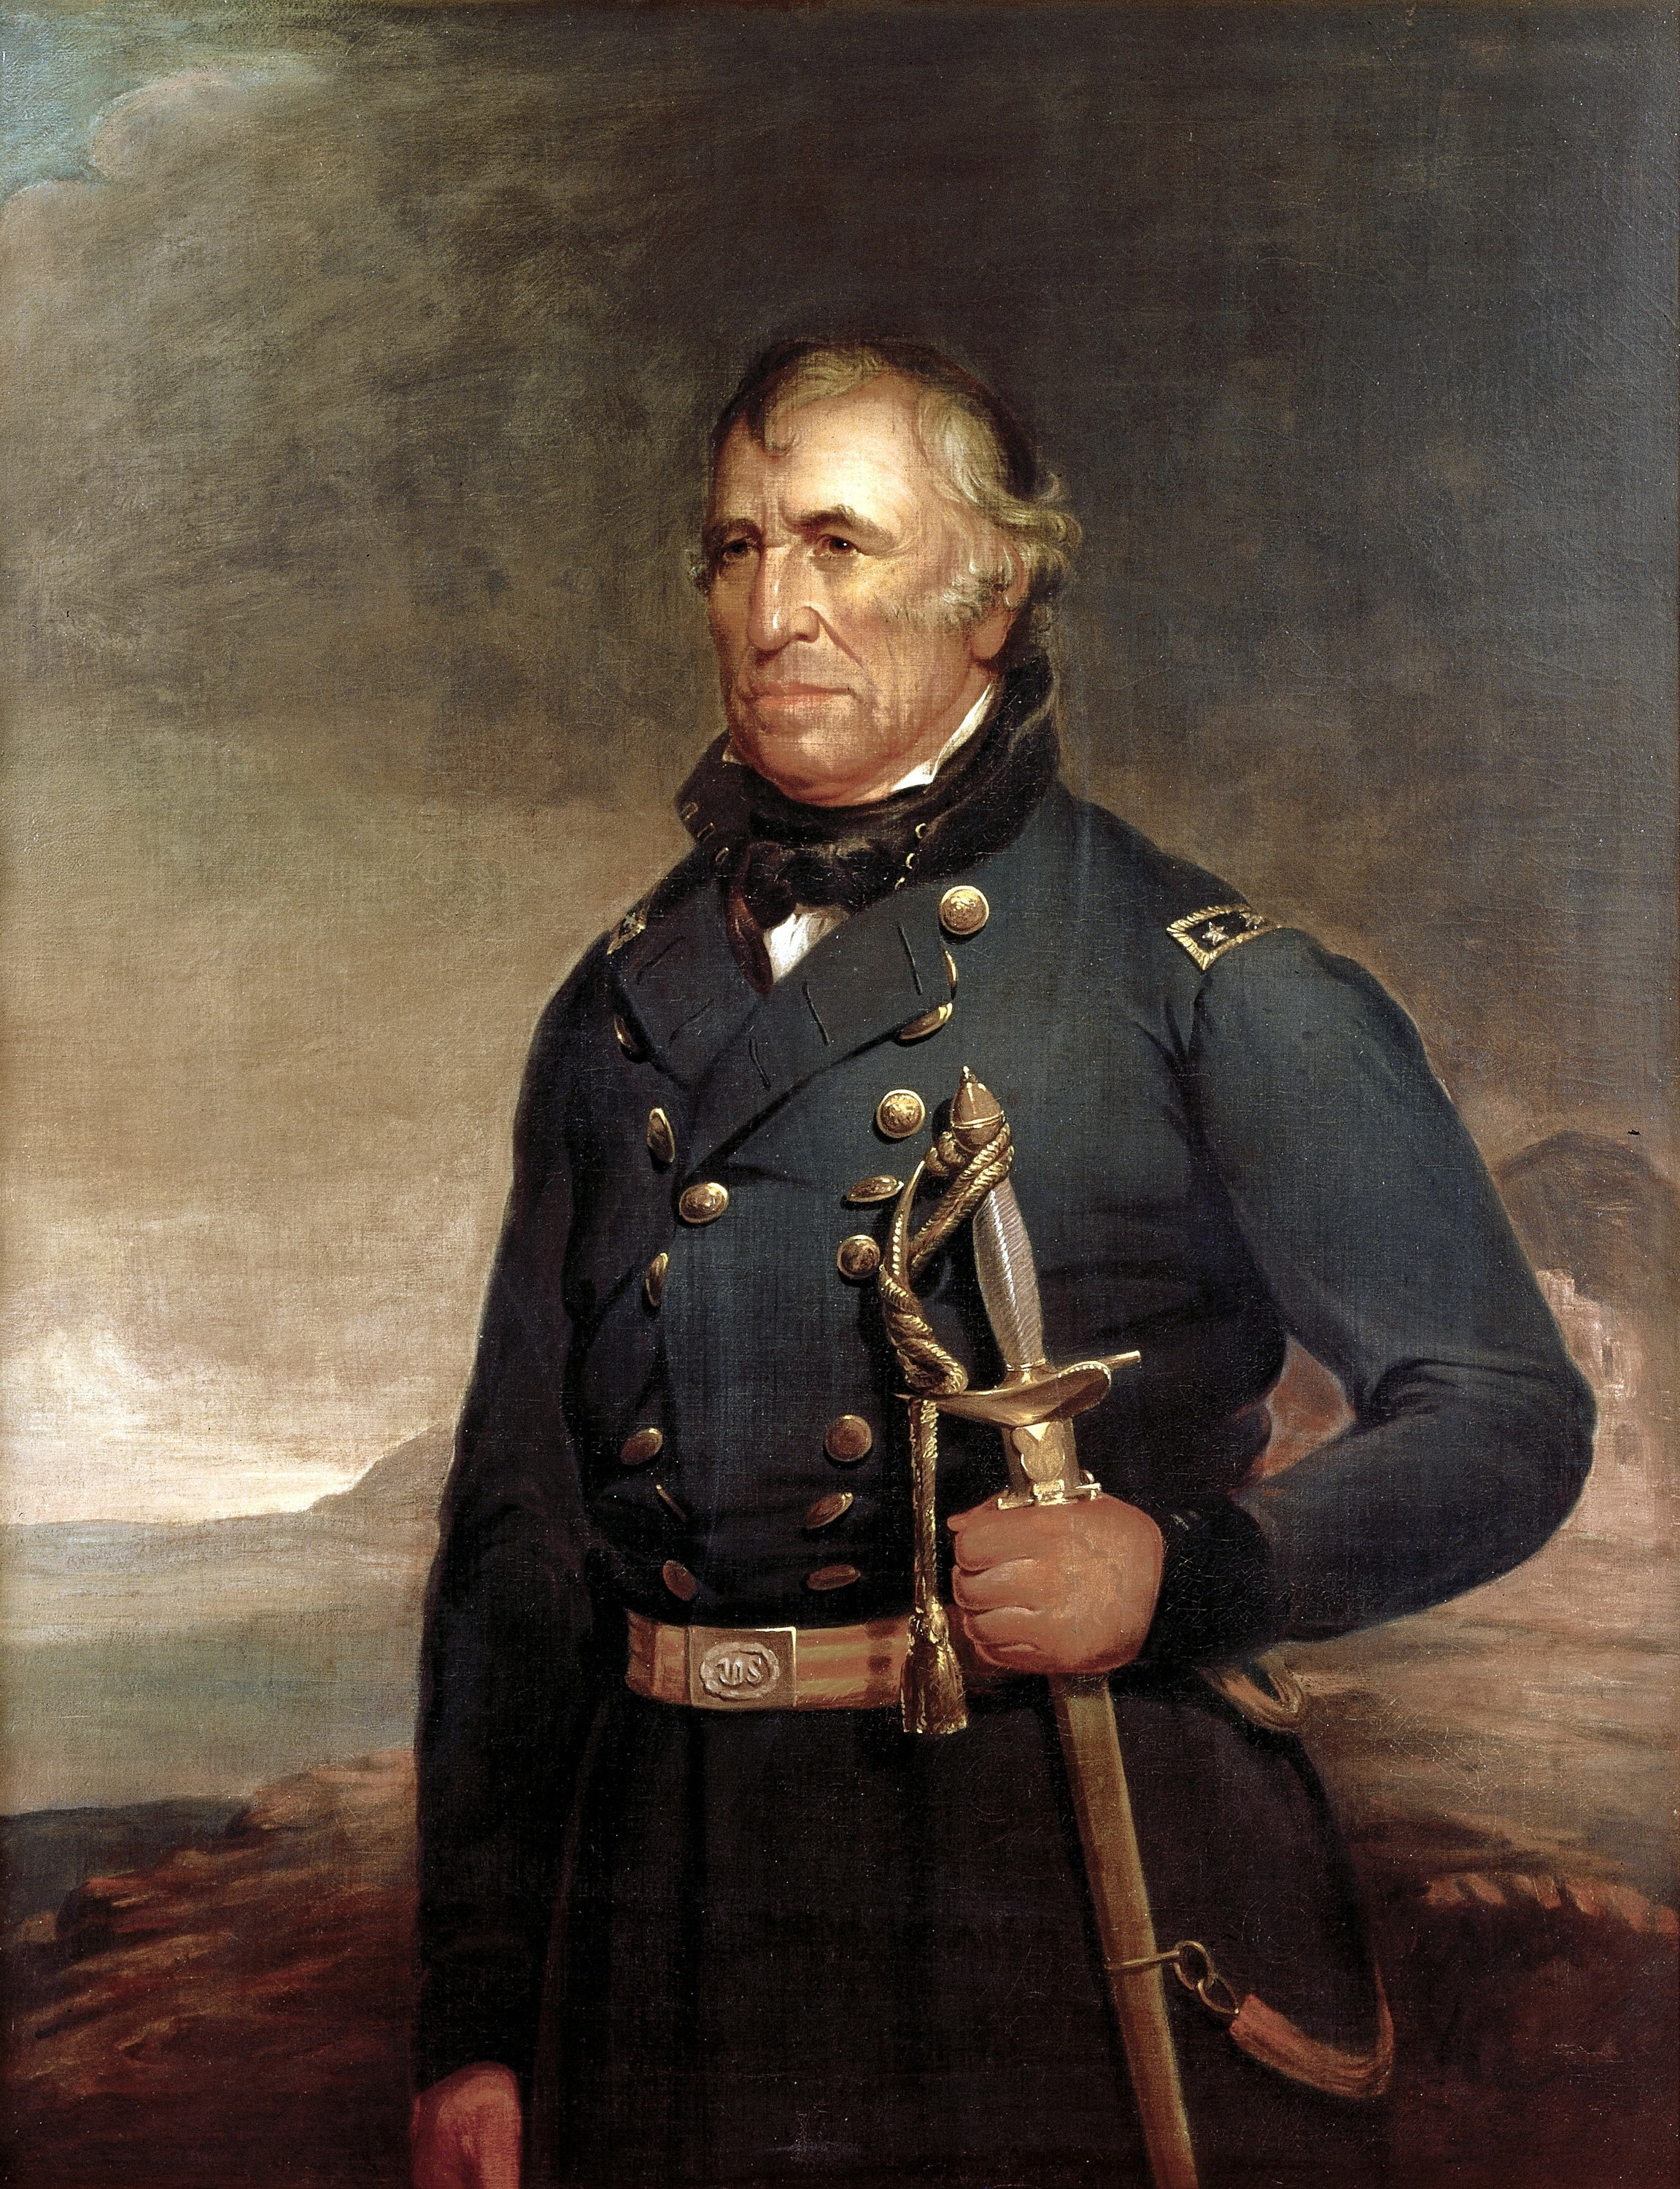 Portrait of U.S. General Zachary Taylor by Joseph Henry Bush circa 1848